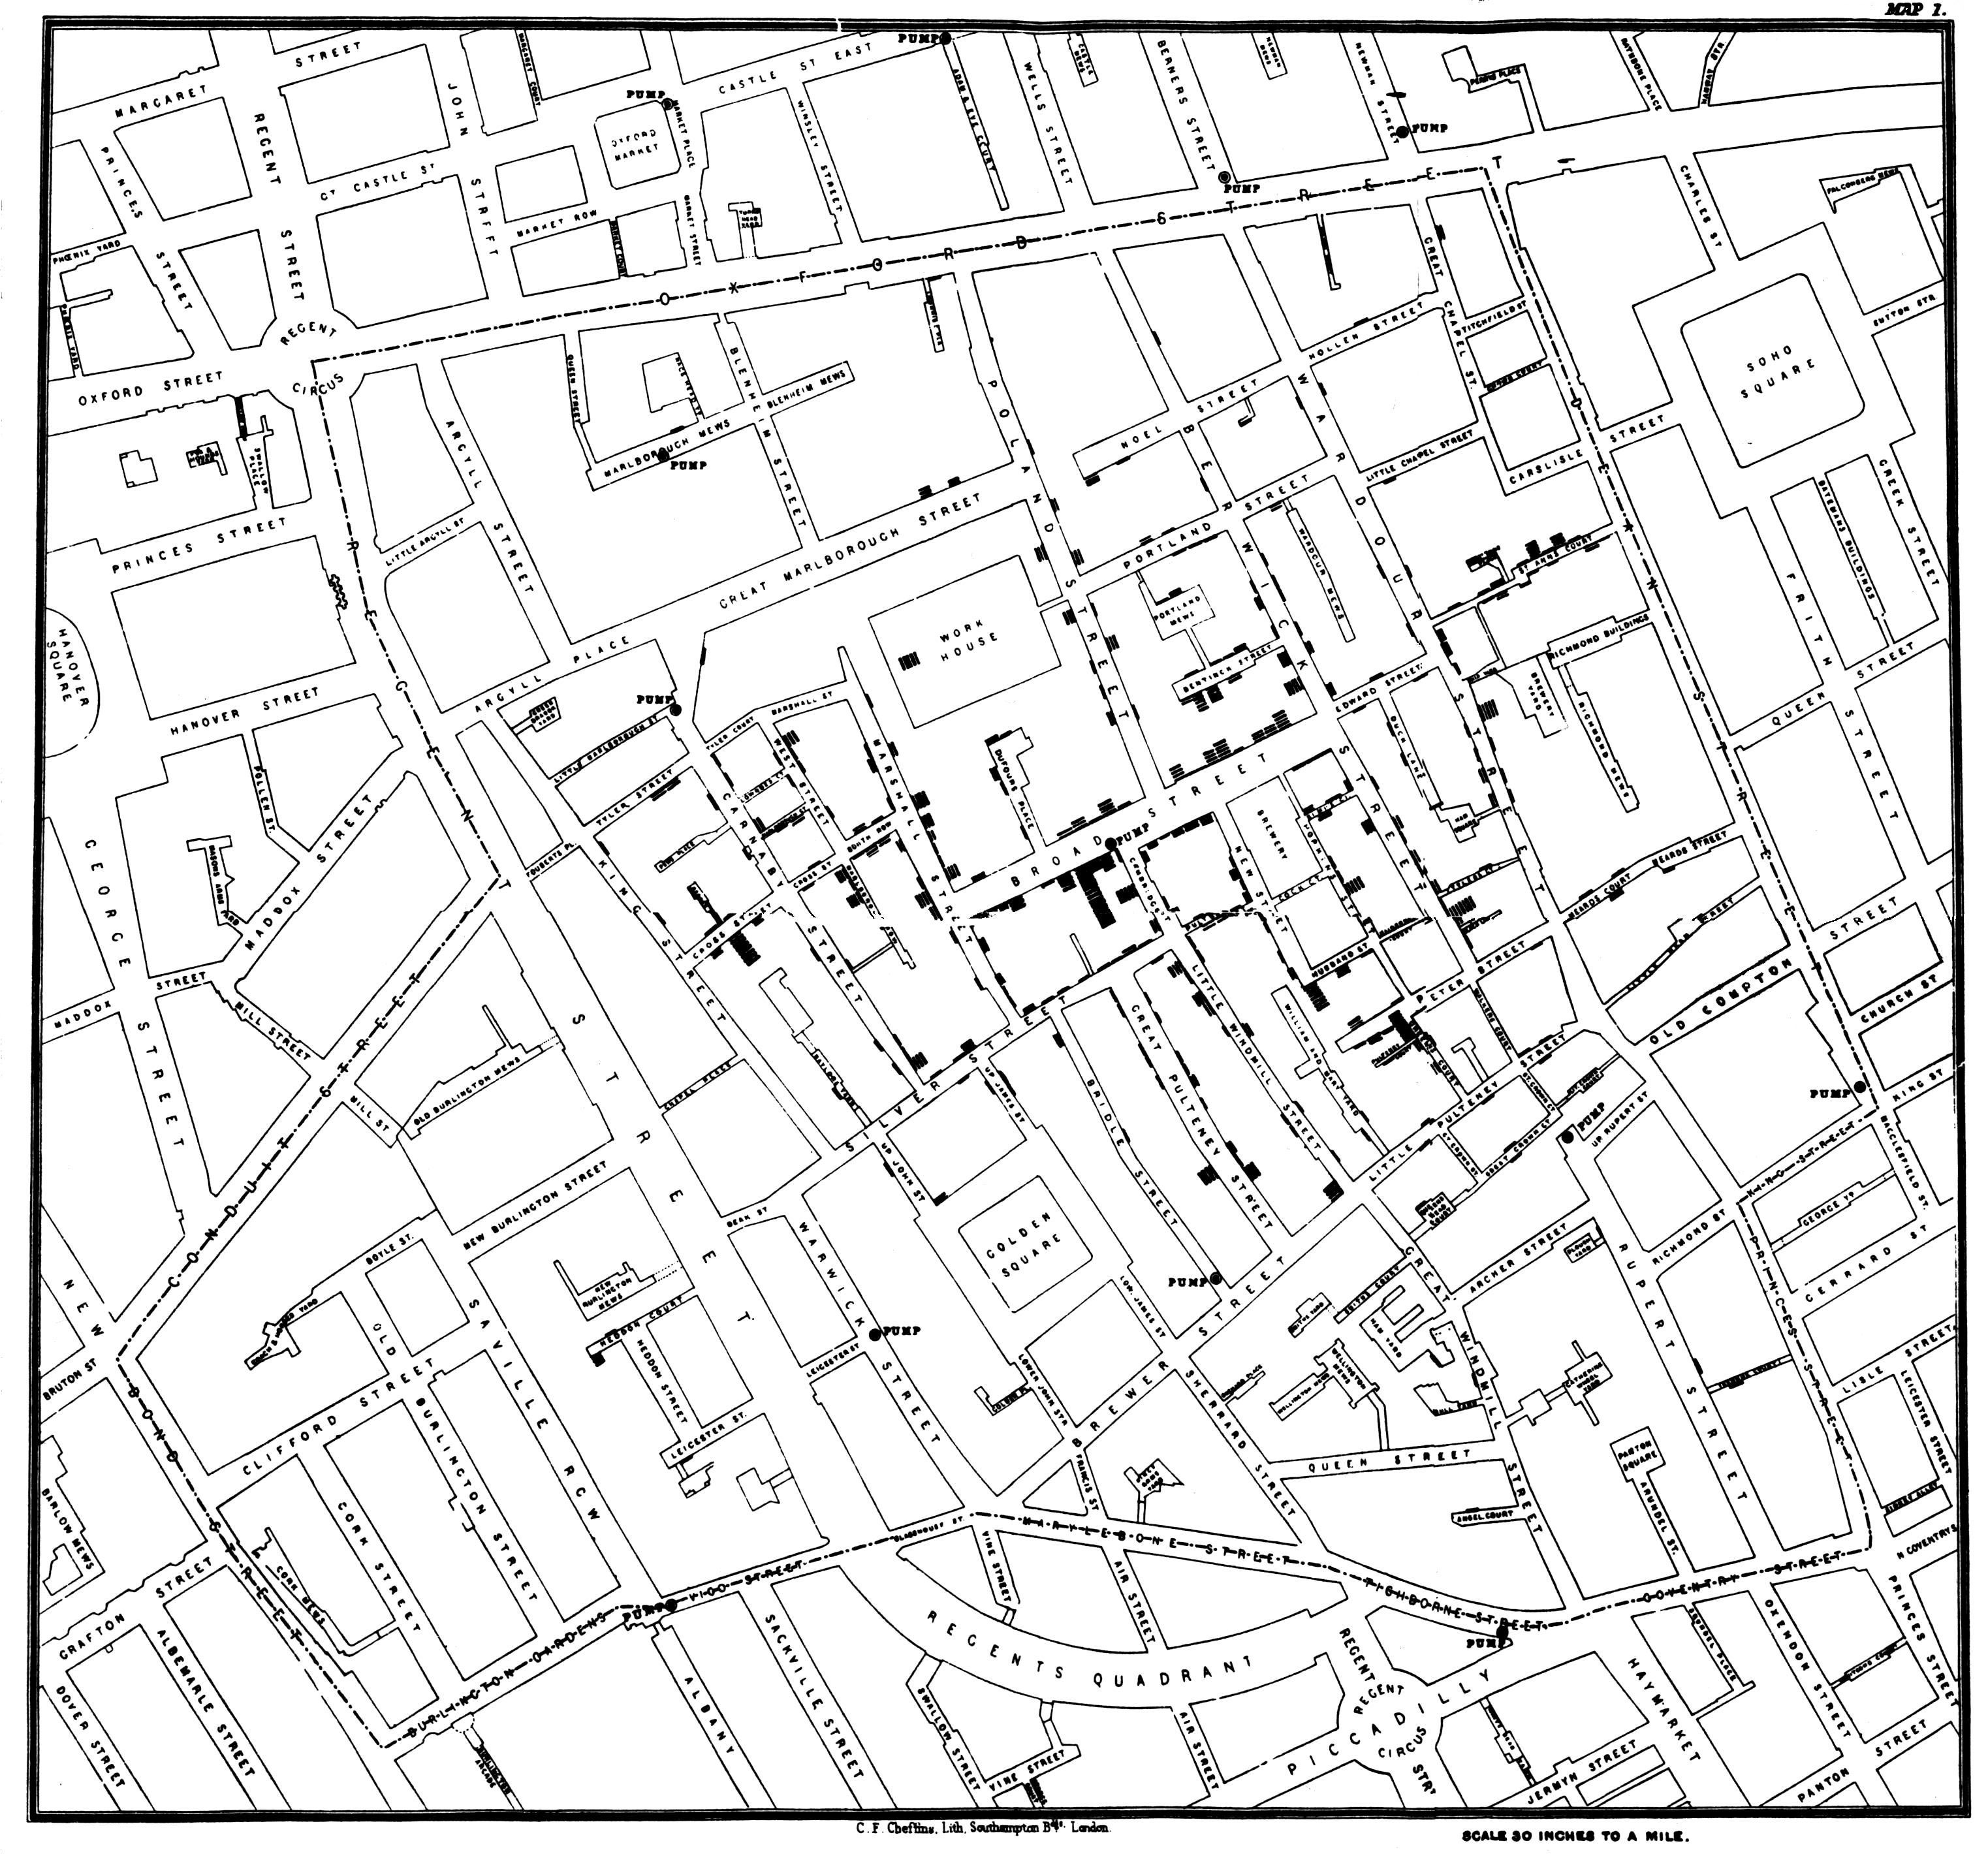 020 Research Paper Snow Cholera Map Economic Geography Wondrous Topics Full